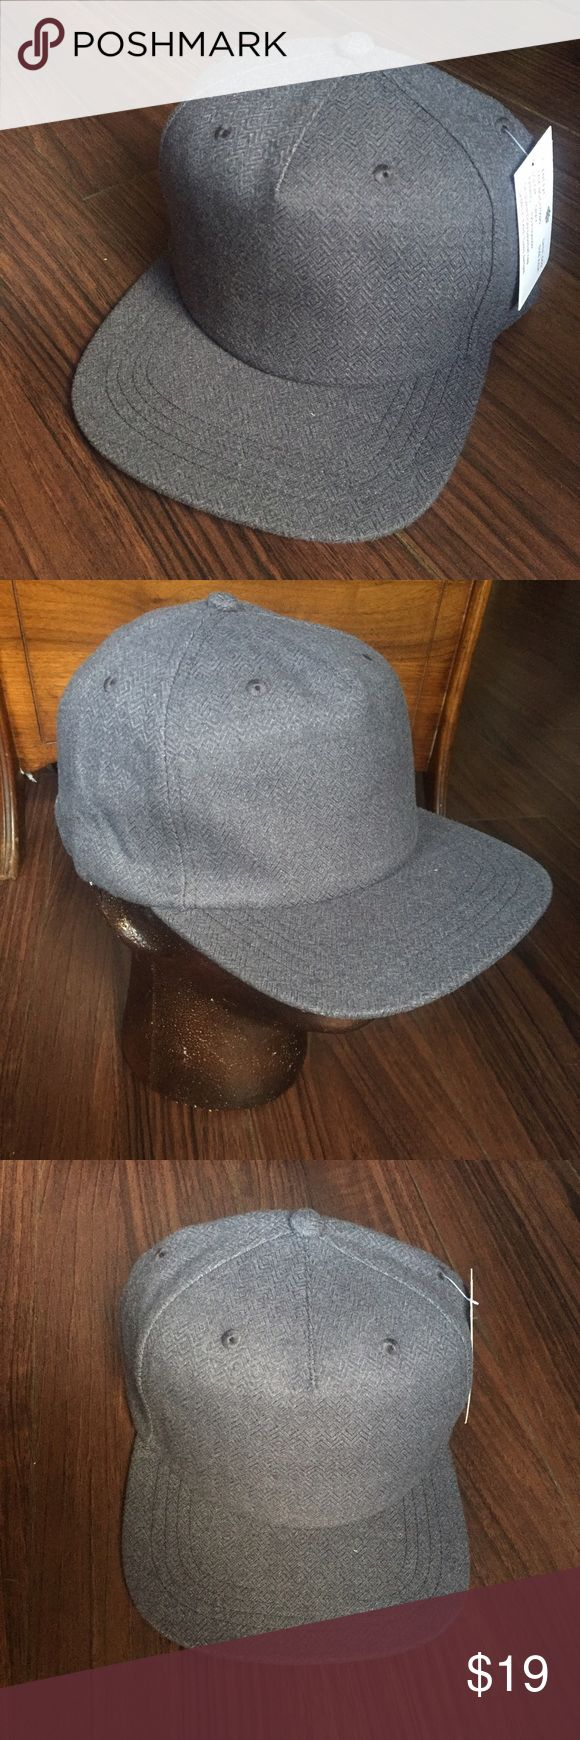 Aztec Baseball Hat Awesome Gray Aztec Baseball Cap - fully adjustable by Beautiful Giant. Not PacSun. Tagged for exposure. Free gift w/ any bundle! 🎁 PacSun Accessories Hats